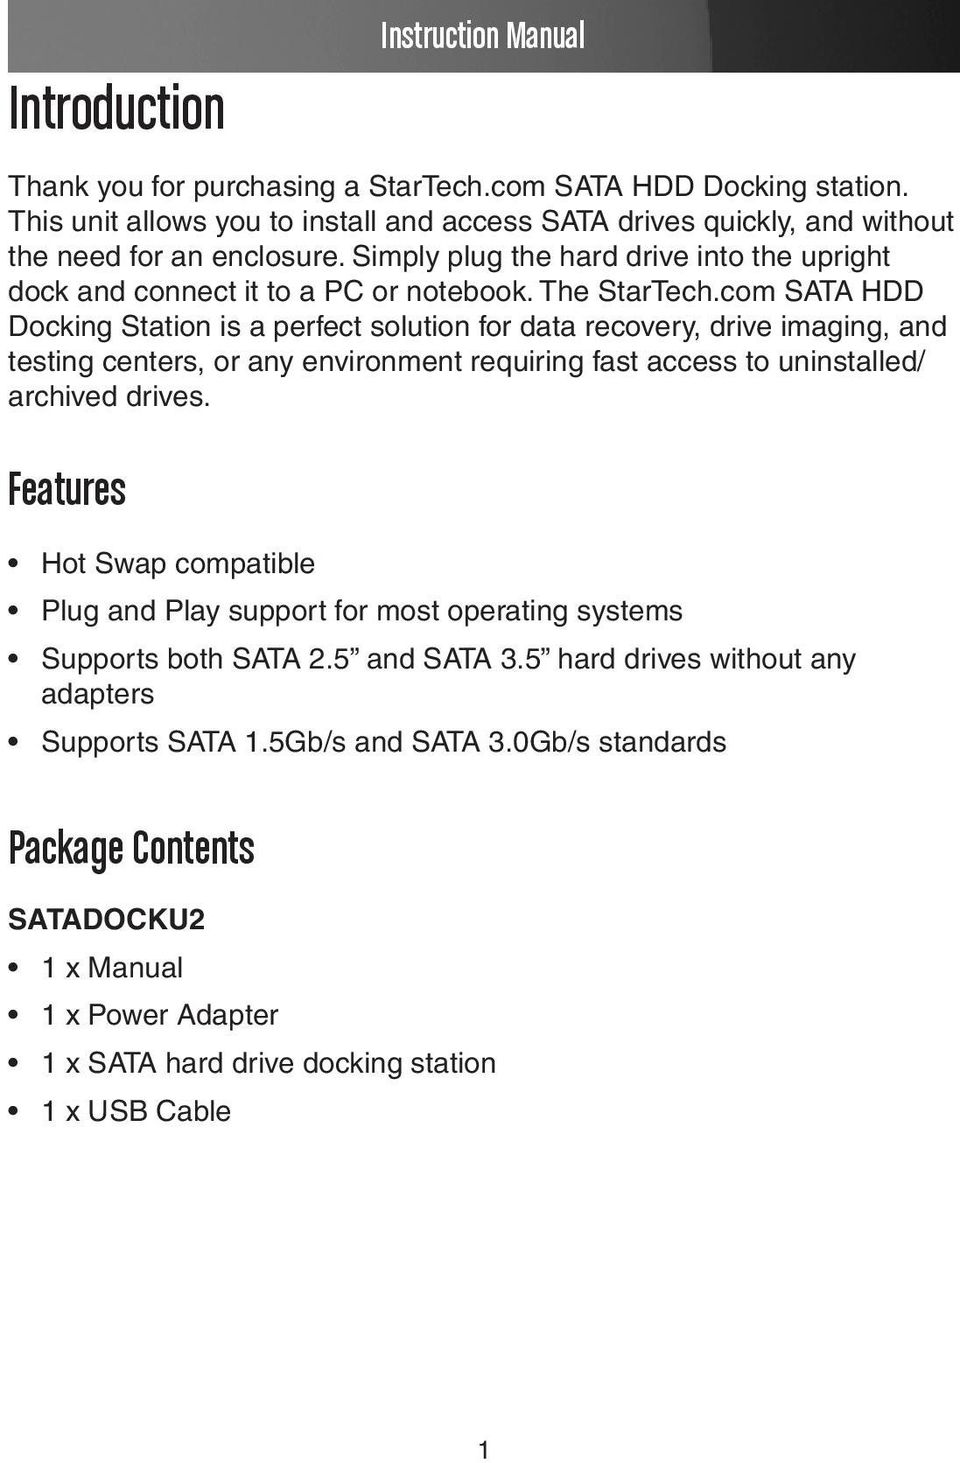 com SATA HDD Docking Station is a perfect solution for data recovery, drive imaging, and testing centers, or any environment requiring fast access to uninstalled/ archived drives.